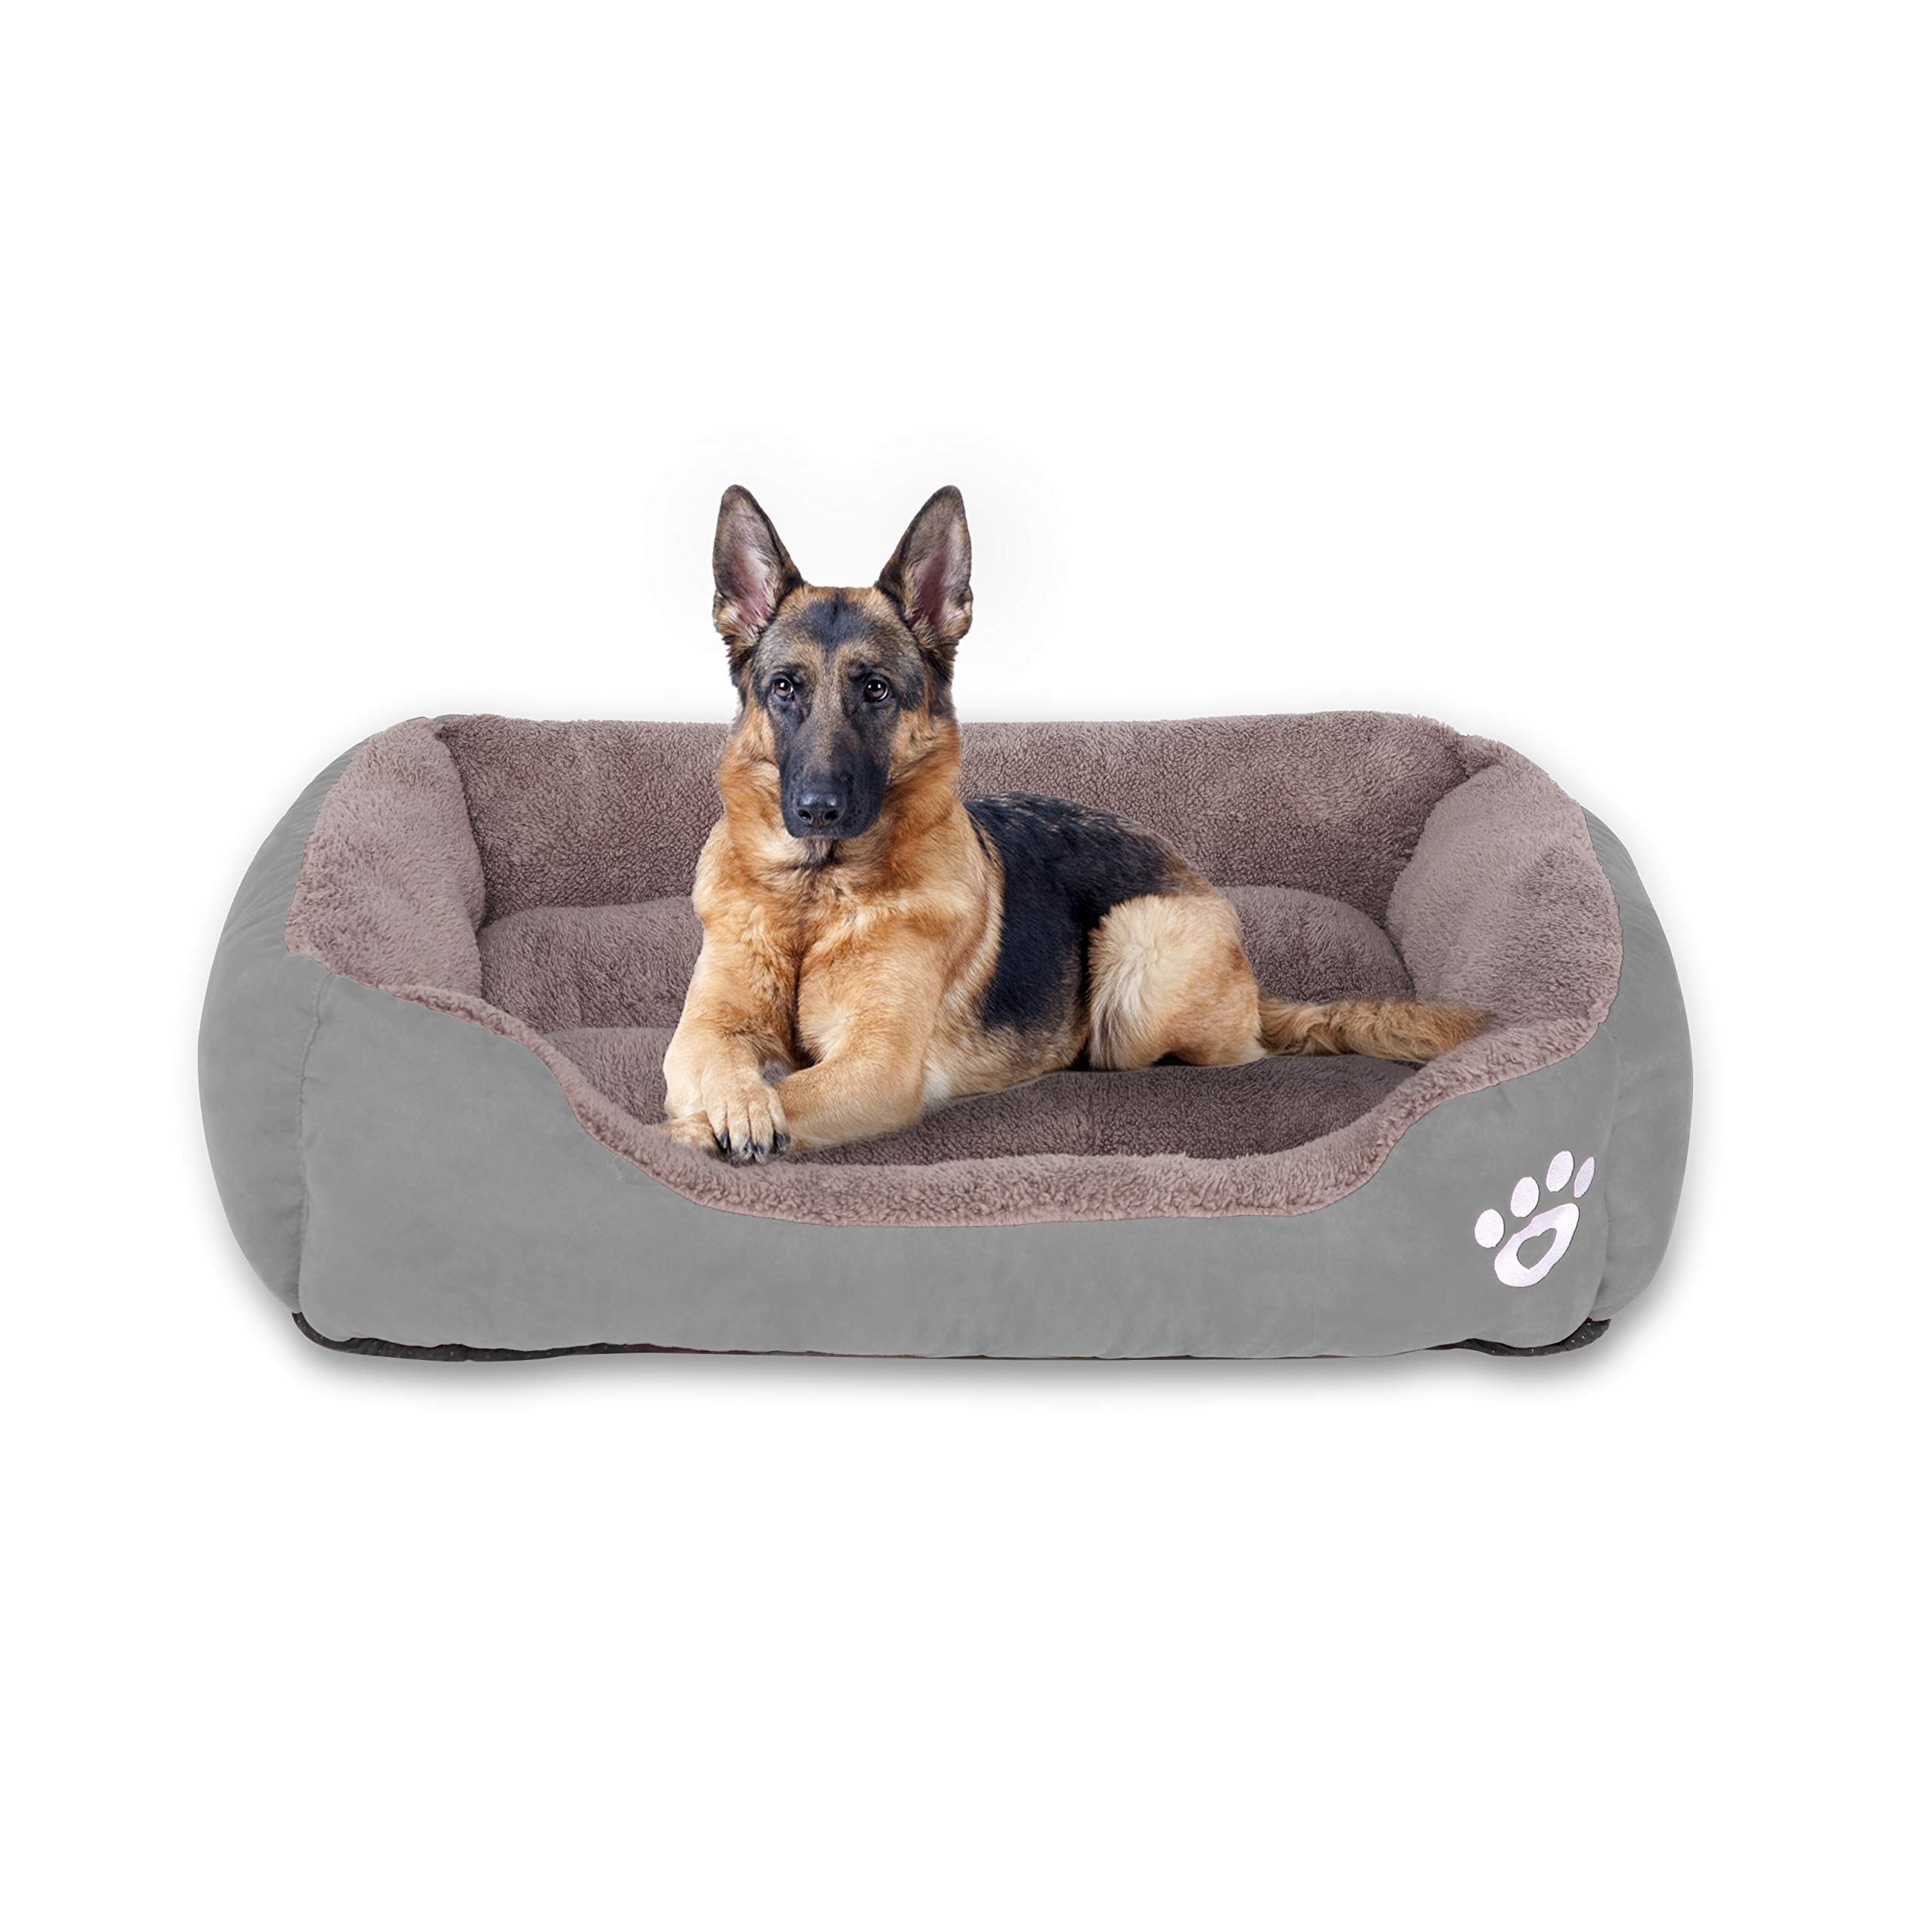 FRISTONE Dog Beds for Medium Dogs 32'' X 24'' Deluxe Washable Pet Beds Medium Plush Crate Rectangle Lounge Sofa Mattress Soft Rised Rims Firm Head Rest Pillows for Small Puppy Cats Sleeping(Grey)